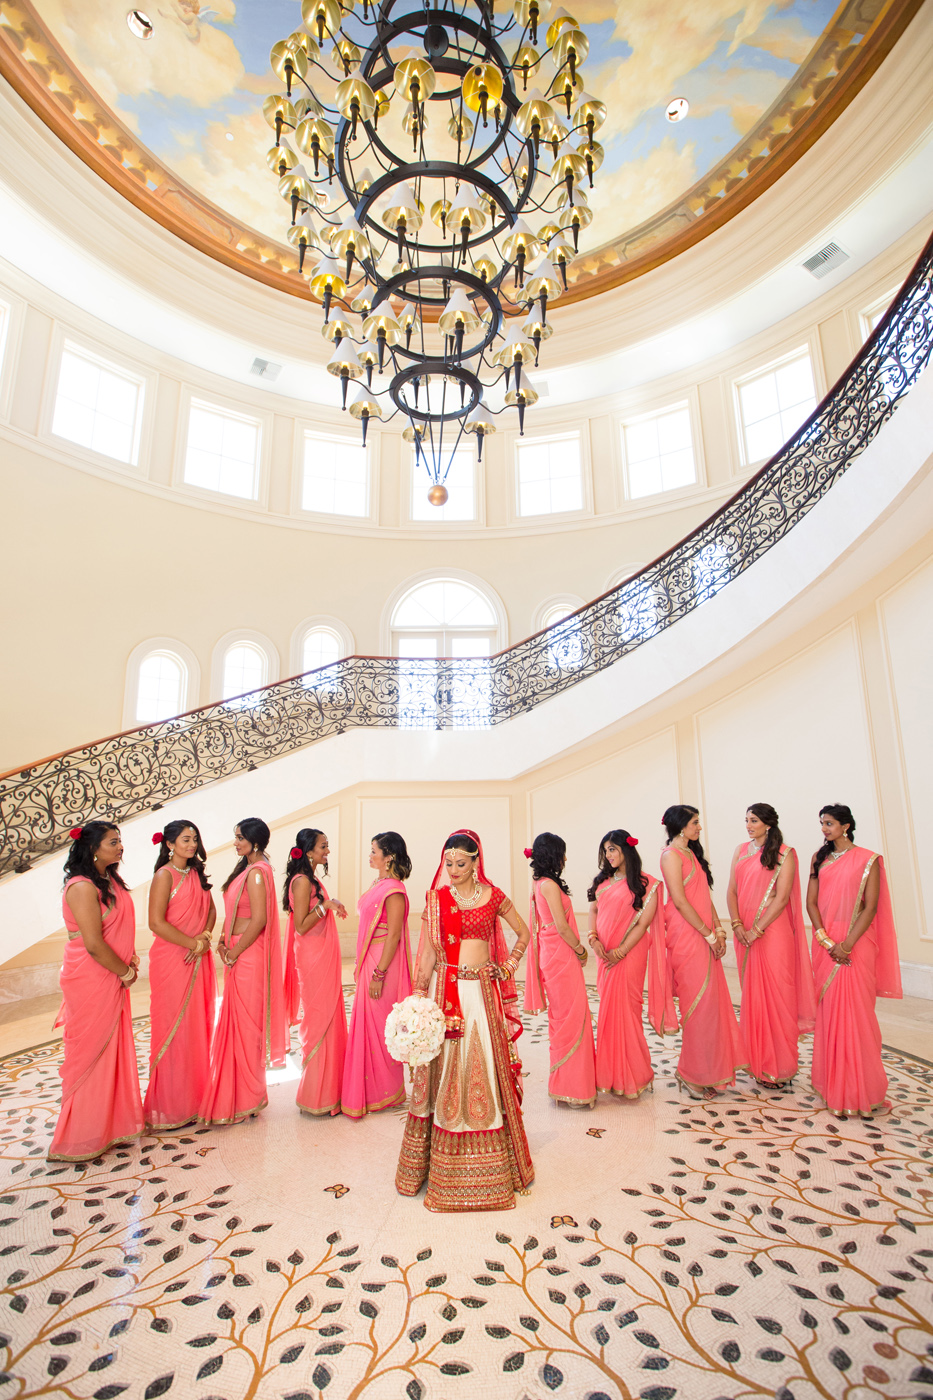 035DukePhotography_DukeImages_weddings_losangeles.jpg